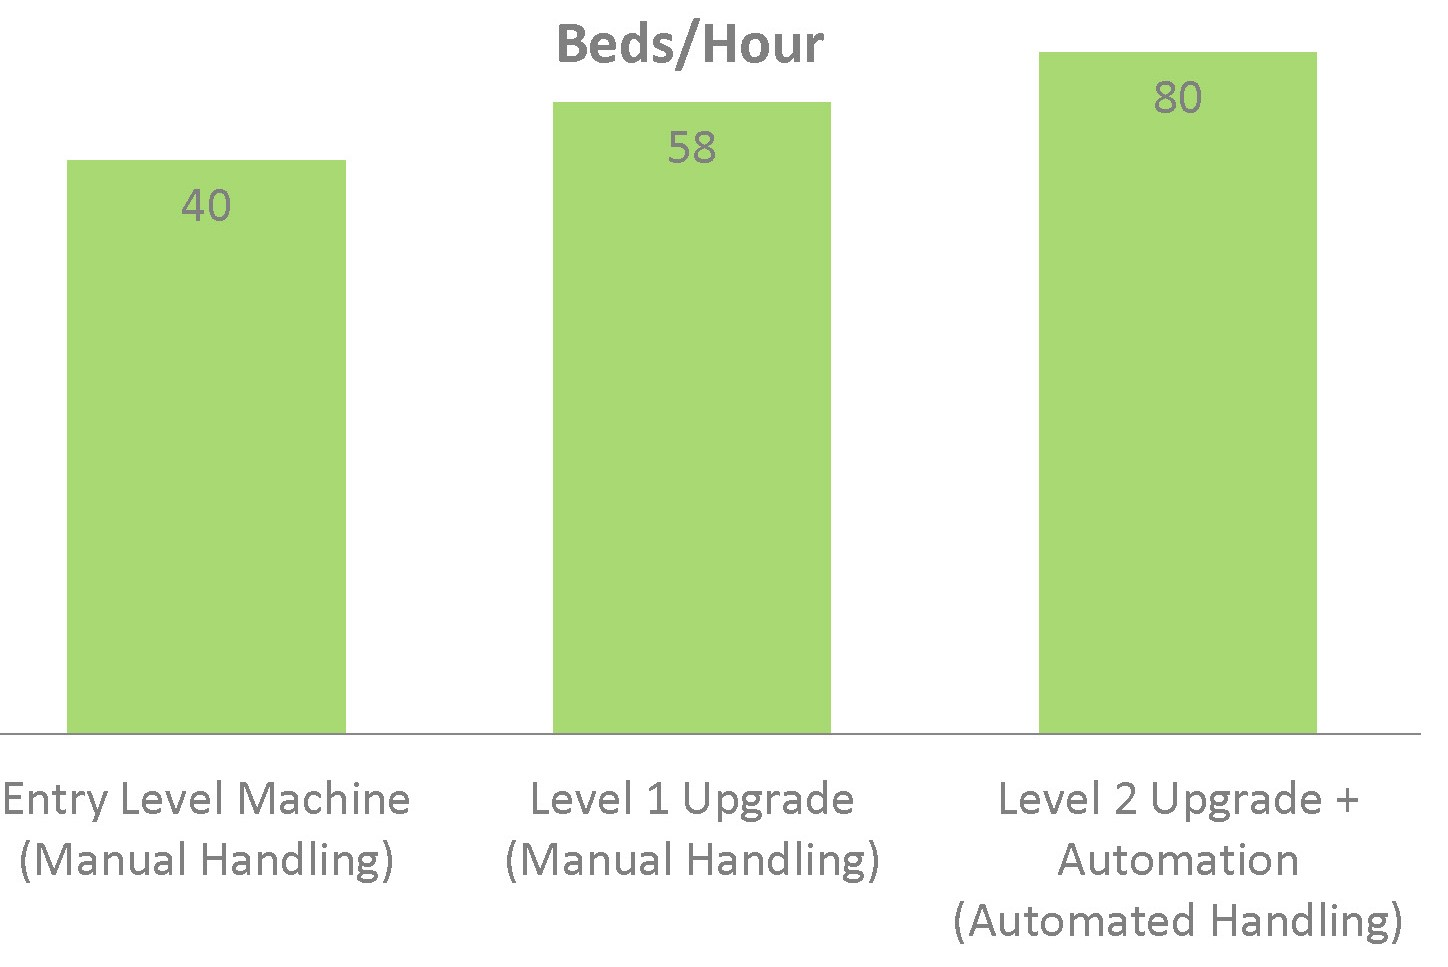 R40-LT Beds per hour chart